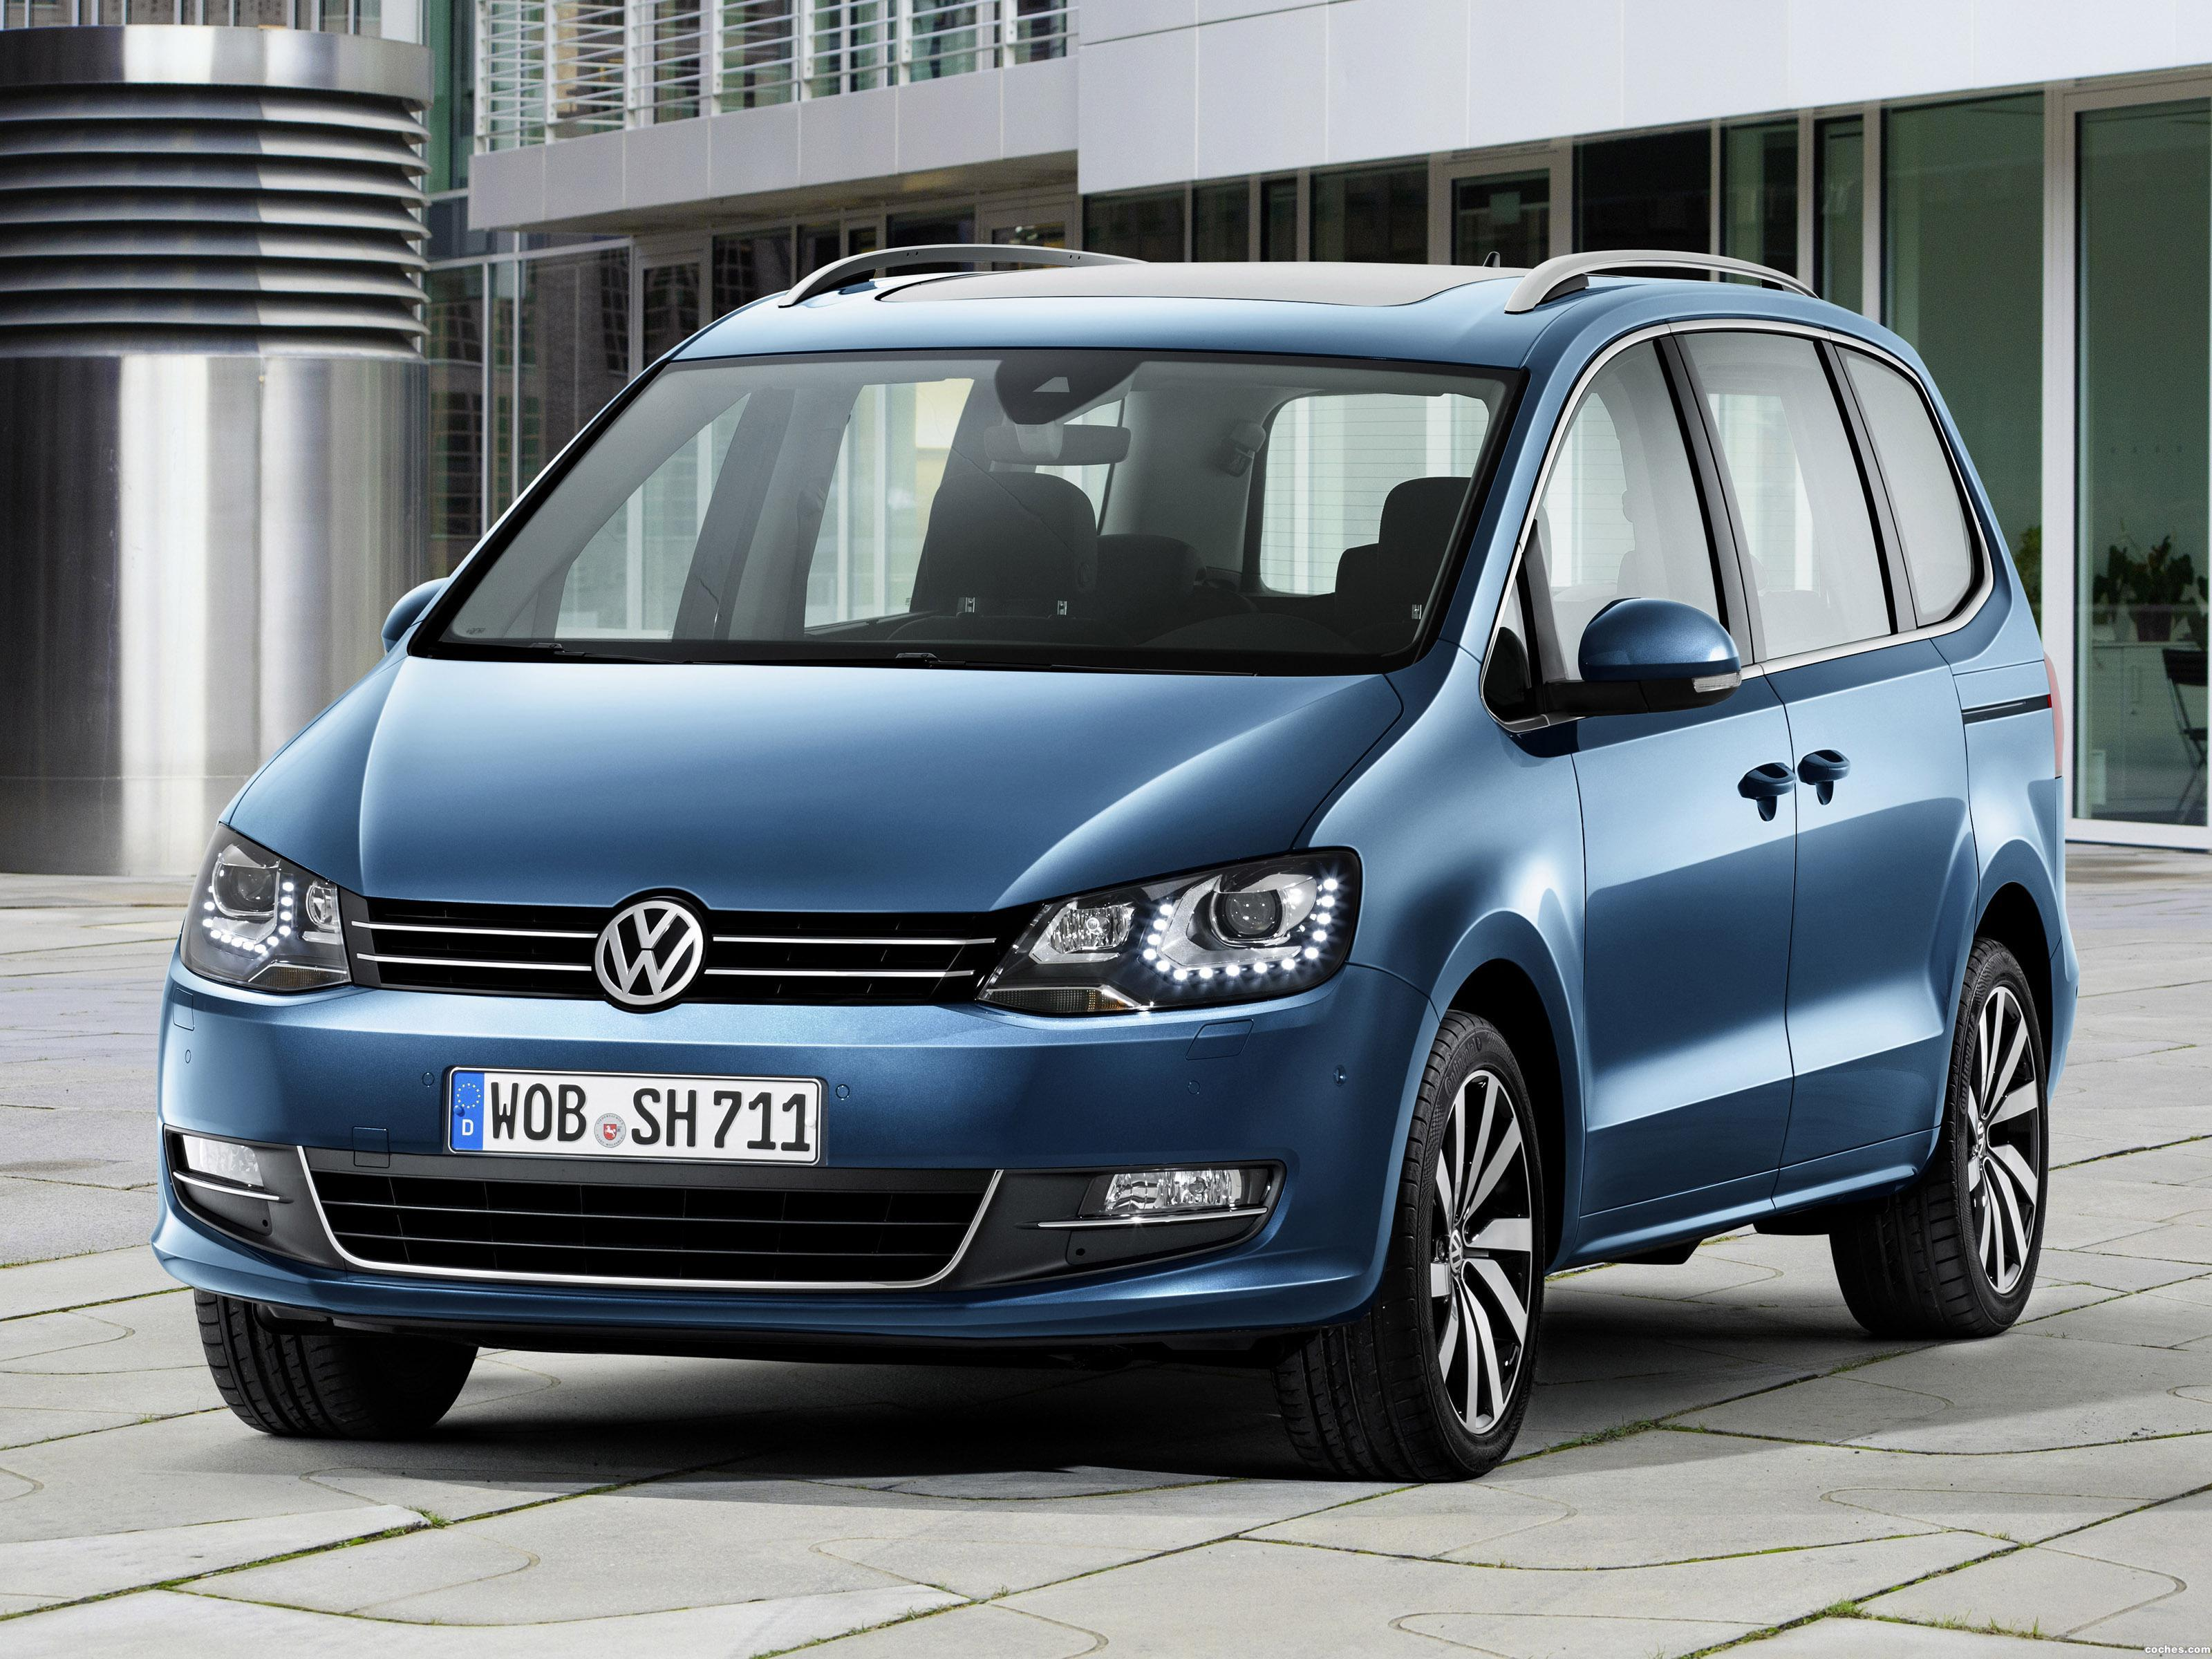 Foto 0 de Volkswagen Sharan 2.0 TDI Bluemotion 2015